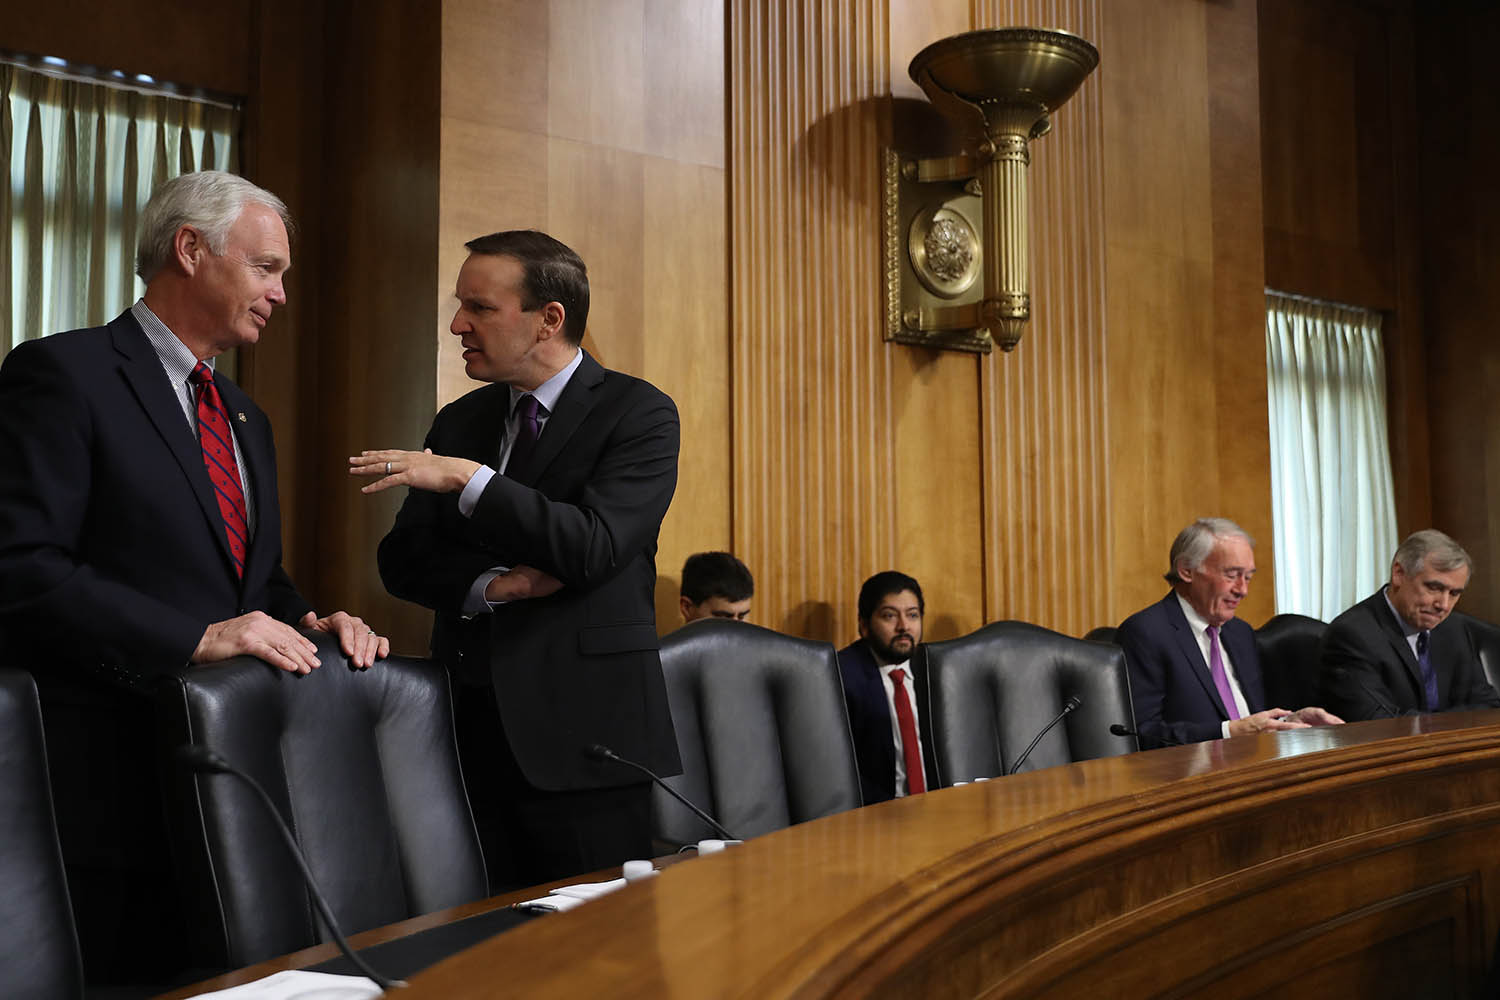 Senate Foreign Relations Committee members Sen. Ron Johnson, R-Wisconsin, (left) and Sen. Chris Murphy (D-Connecticutt) talk before a hearing in the Dirksen Senate Office Building on Capitol Hill in Washington on Dec. 3, 2019.